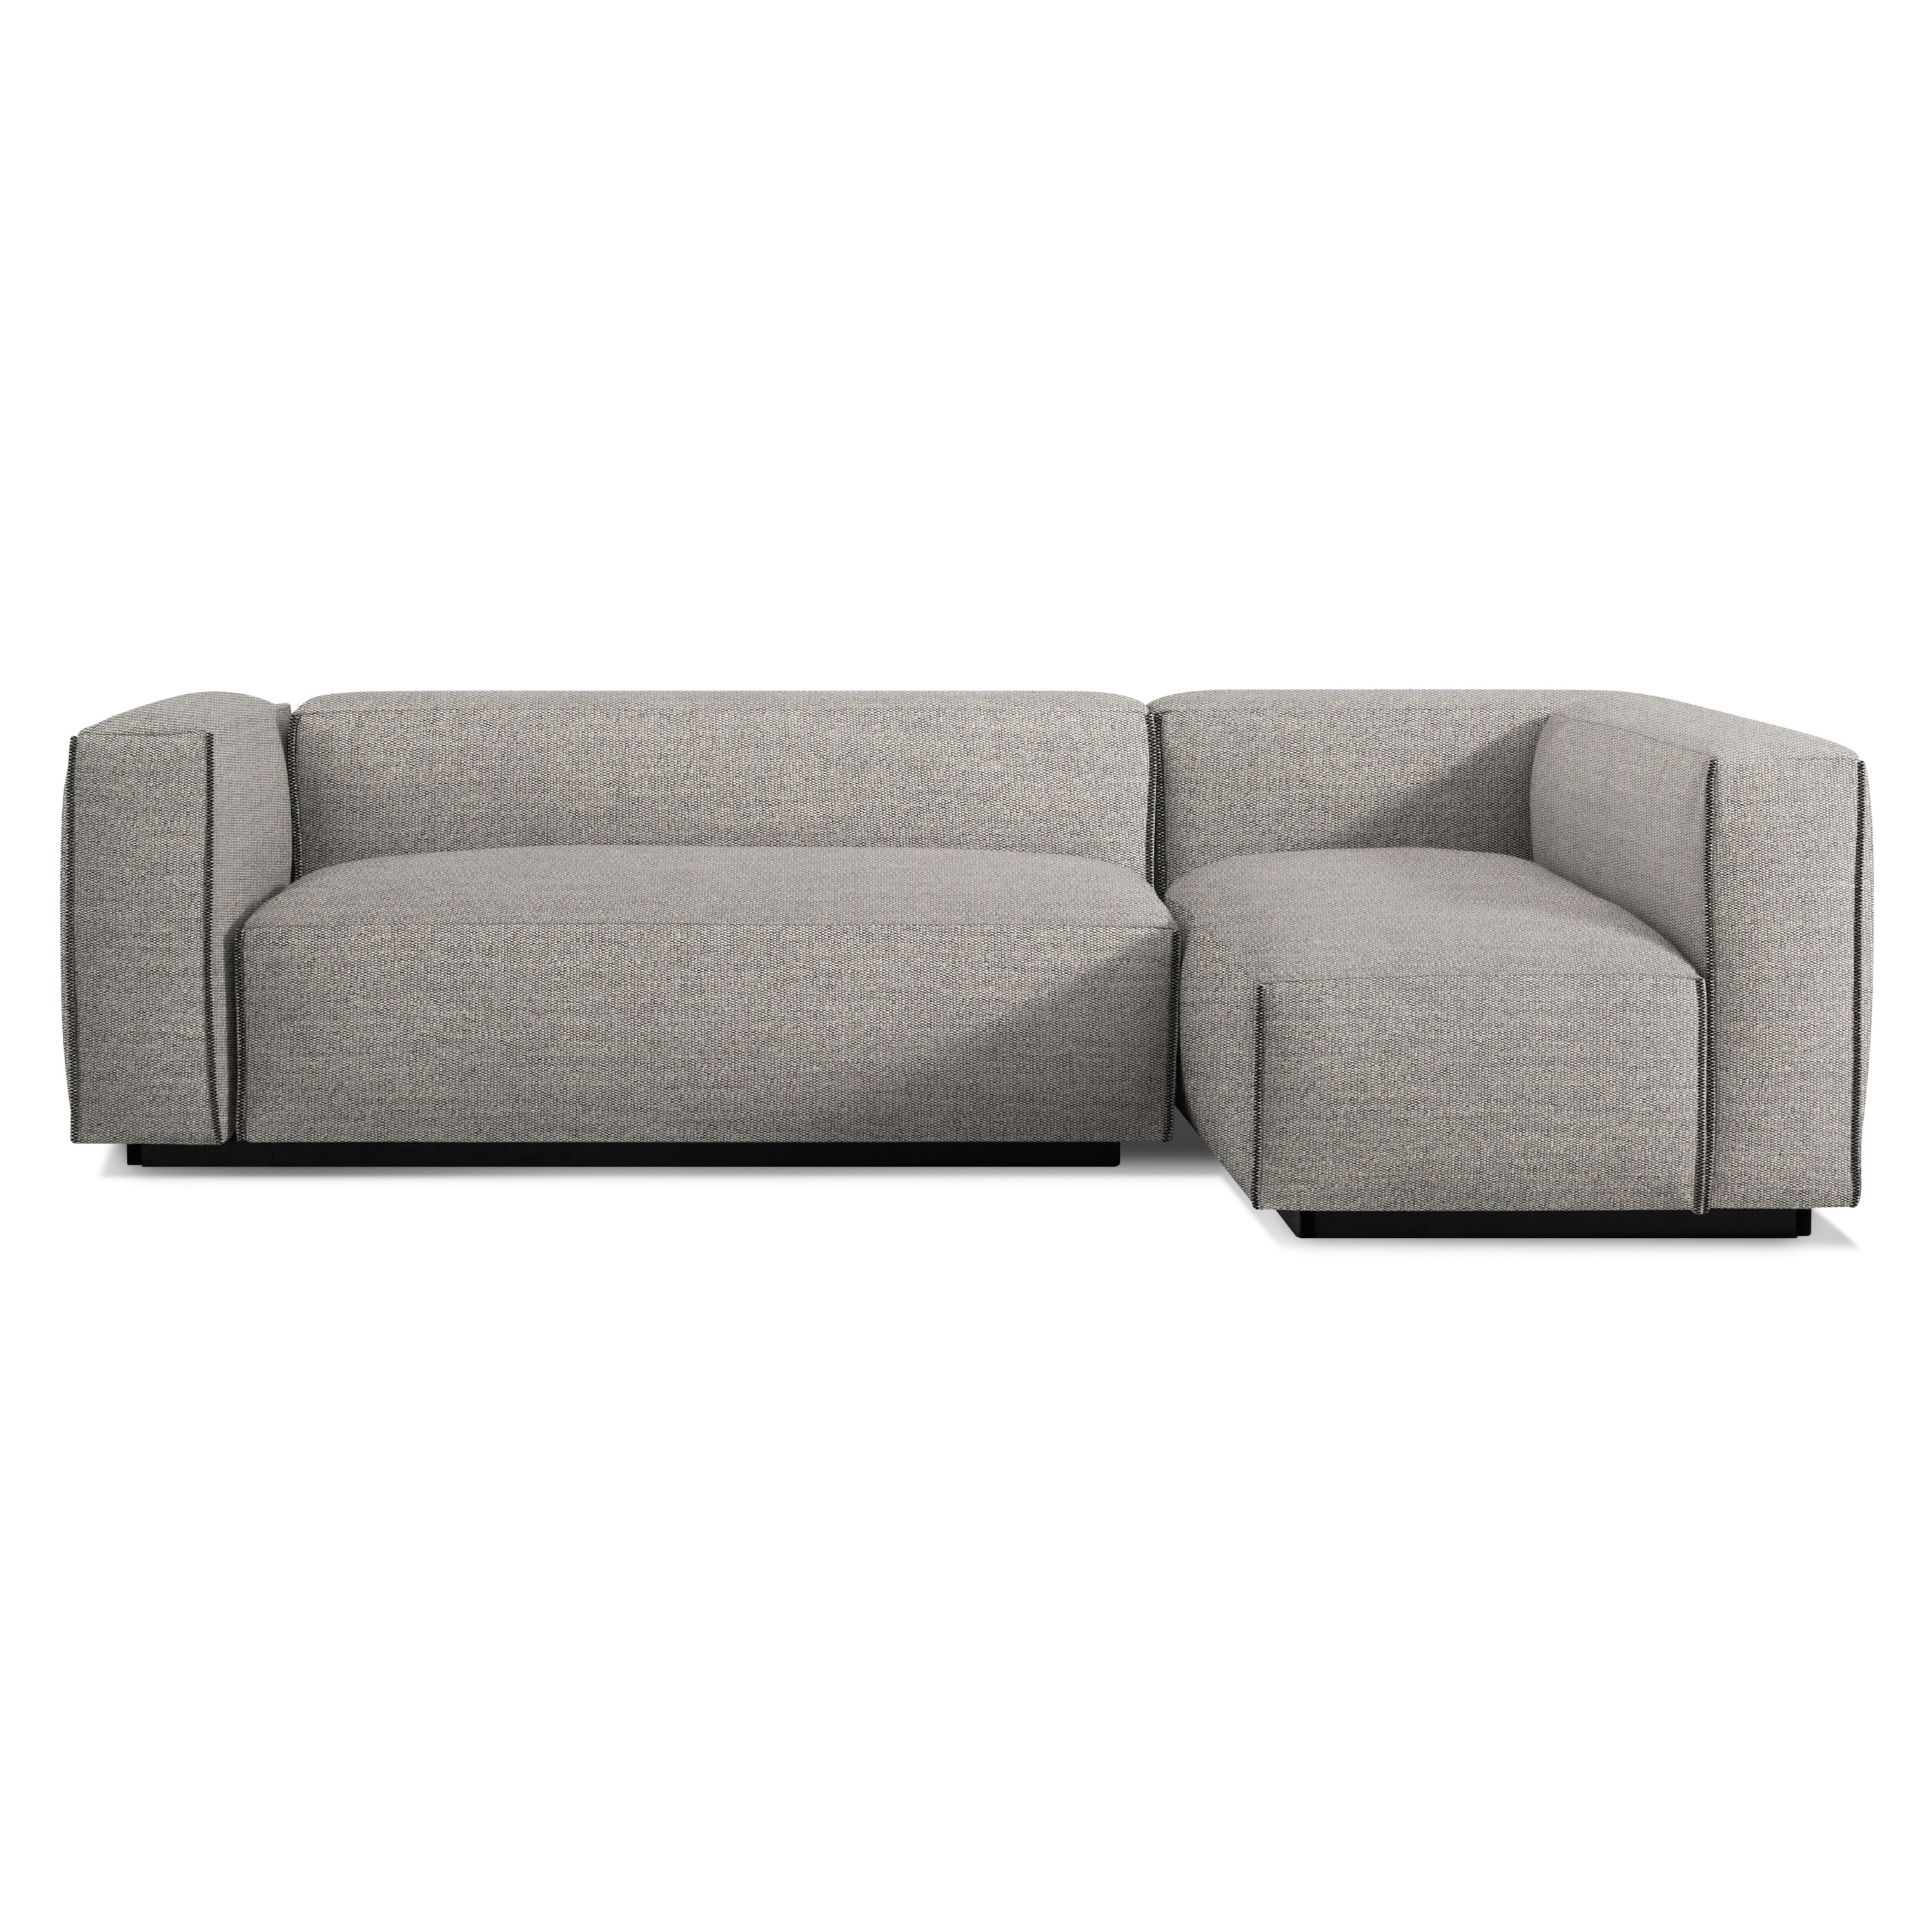 A Small Sectional Sofa Is Adorable Home Furniture For Your Living In Avery 2 Piece Sectionals With Raf Armless Chaise (View 20 of 25)